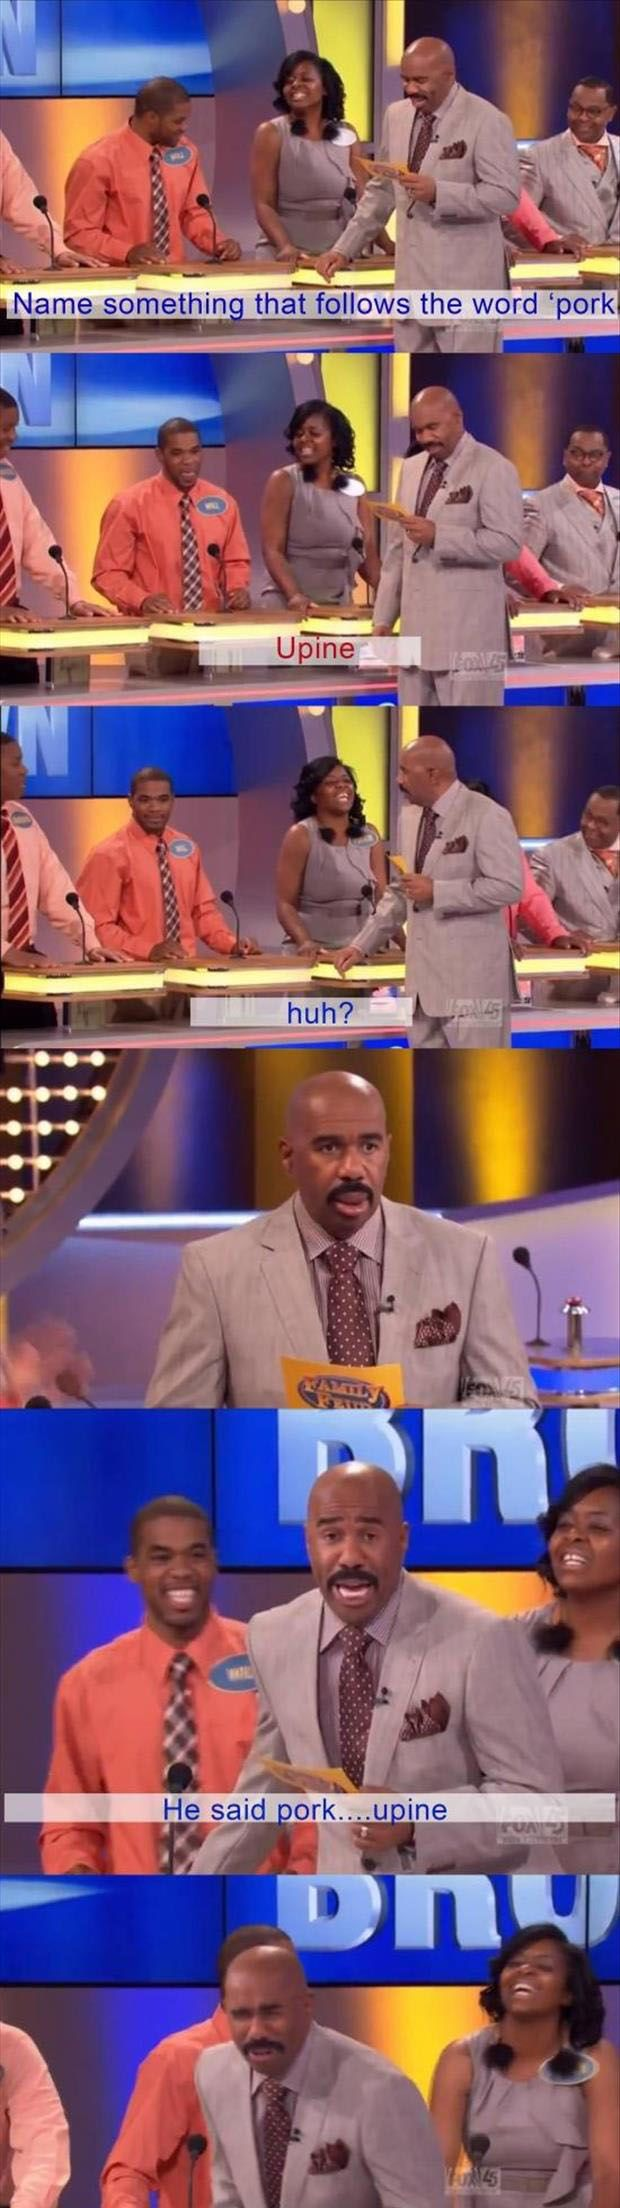 I'm not going to lie, I absolutely love watching Family Feud because Steve Harvey is hilarious.